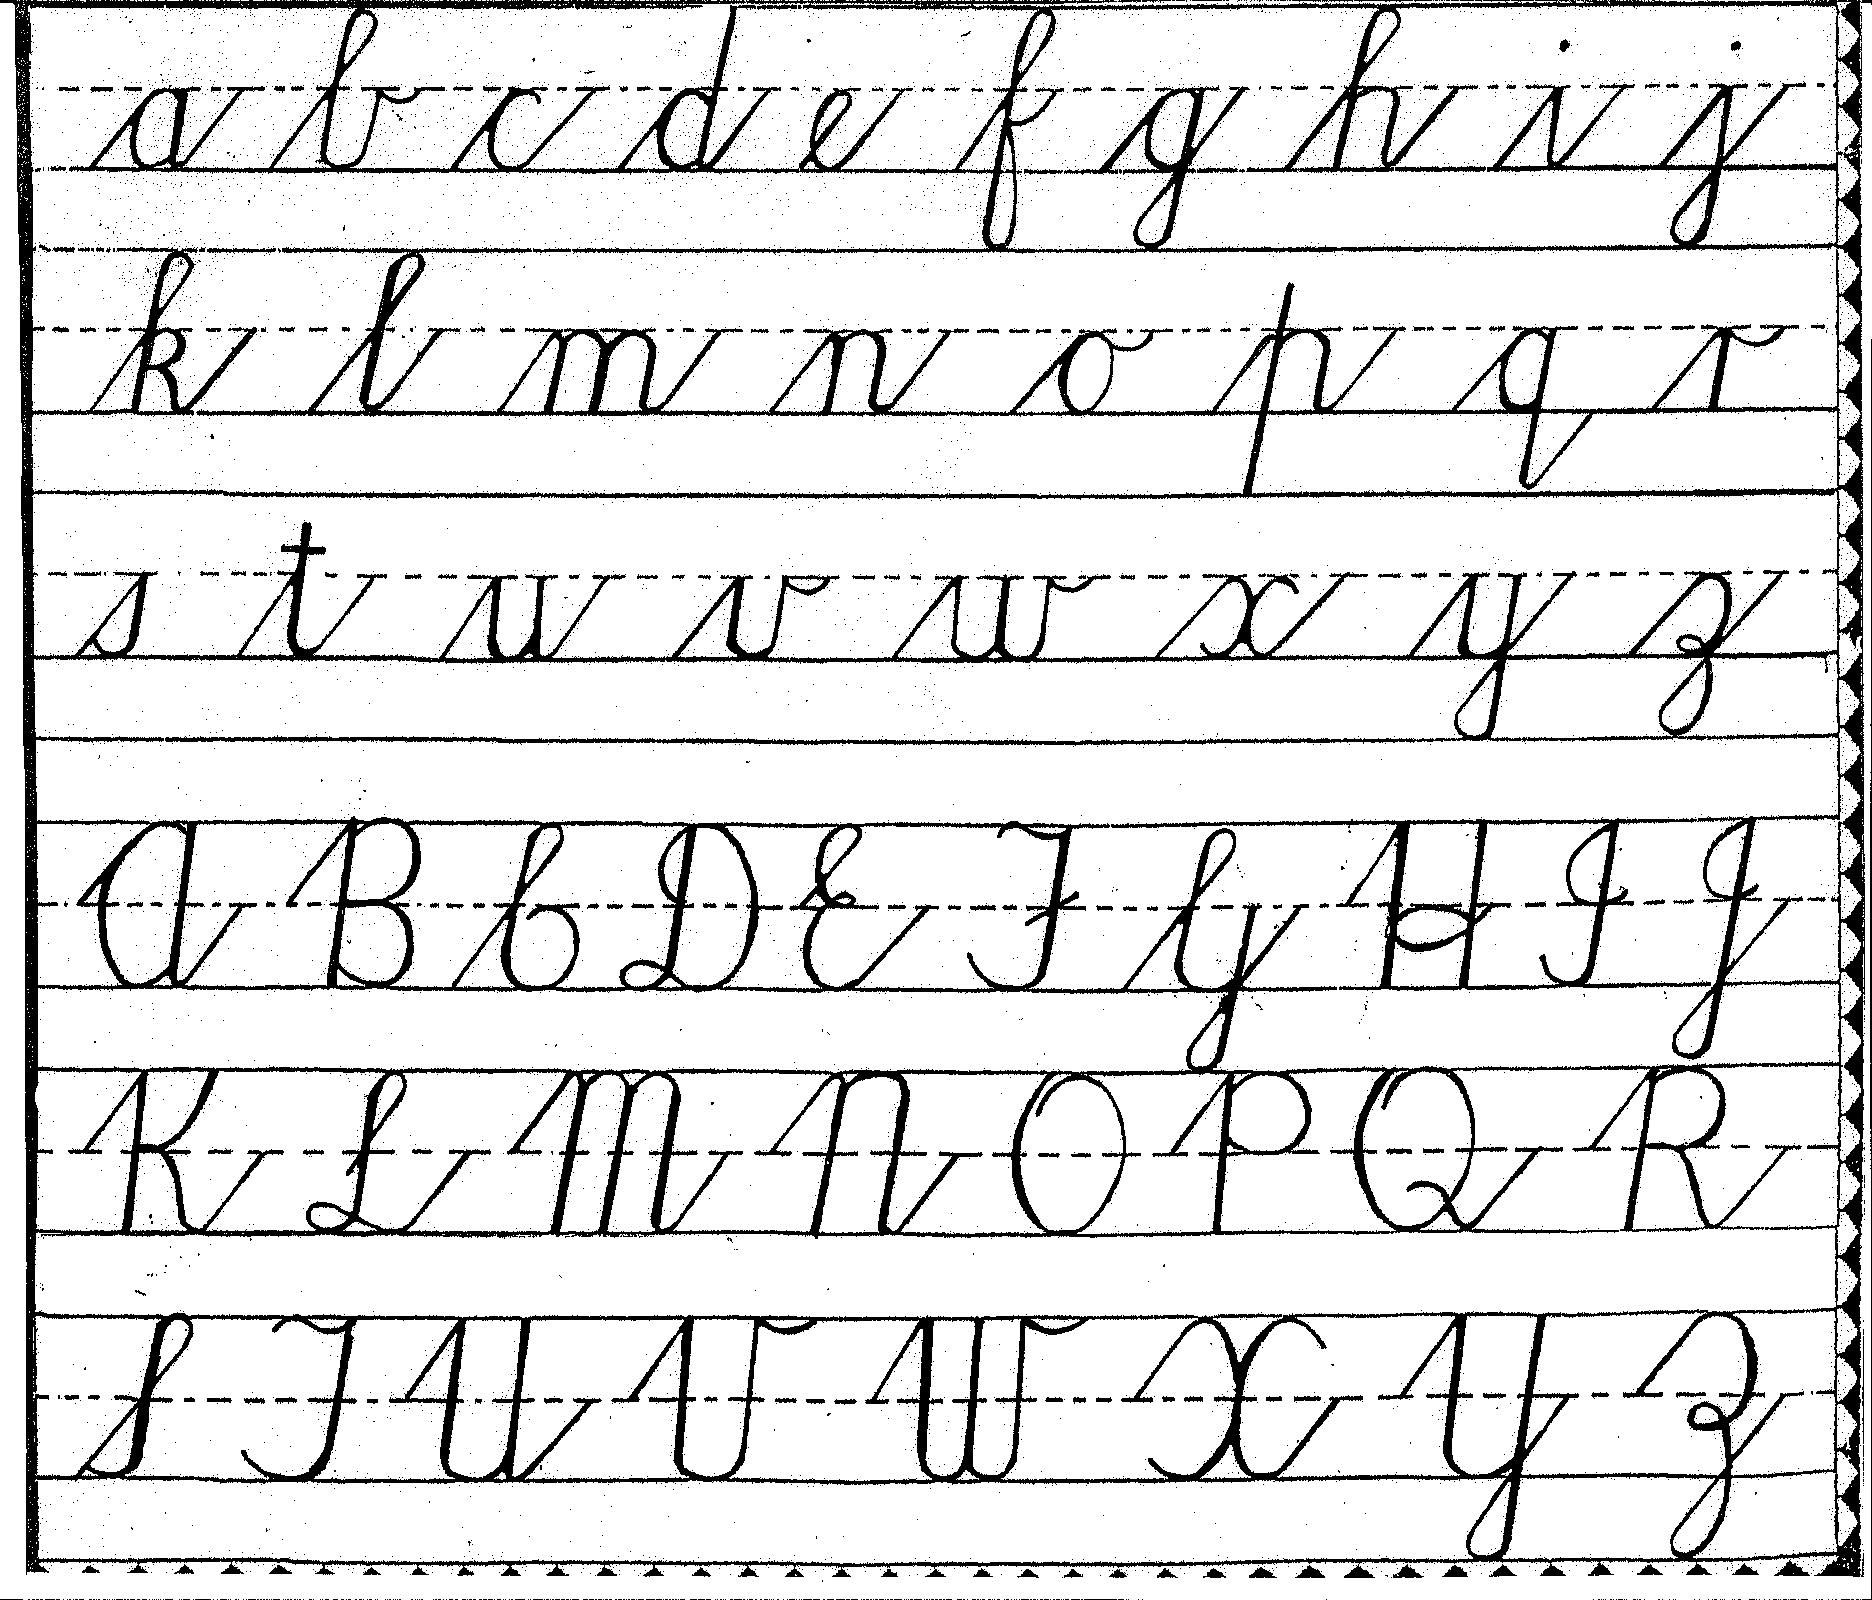 Worksheet How To Write The Alphabet In Handwriting 1000 images about cursive handwriting on pinterest calligraphy pens and watercolor lettering